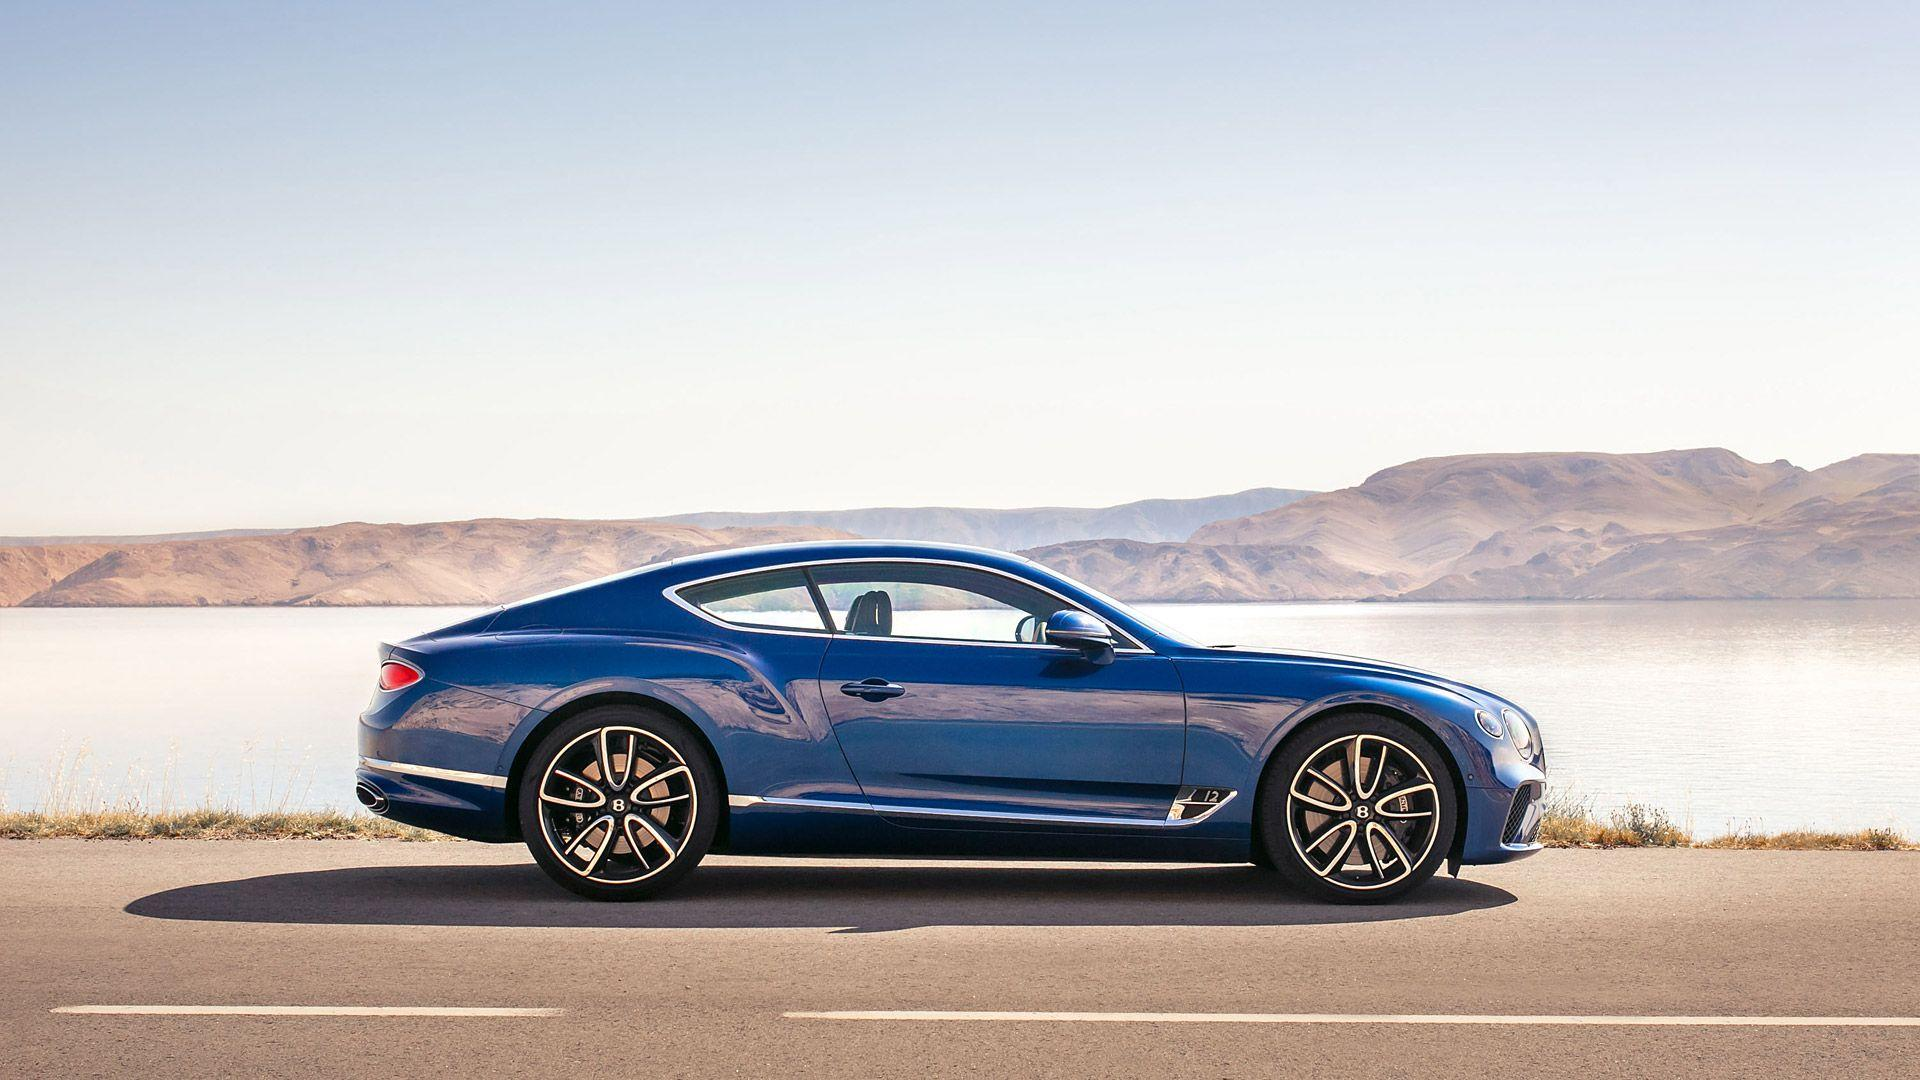 2018 Bentley Continental GT Wallpapers & HD Images - WSupercars